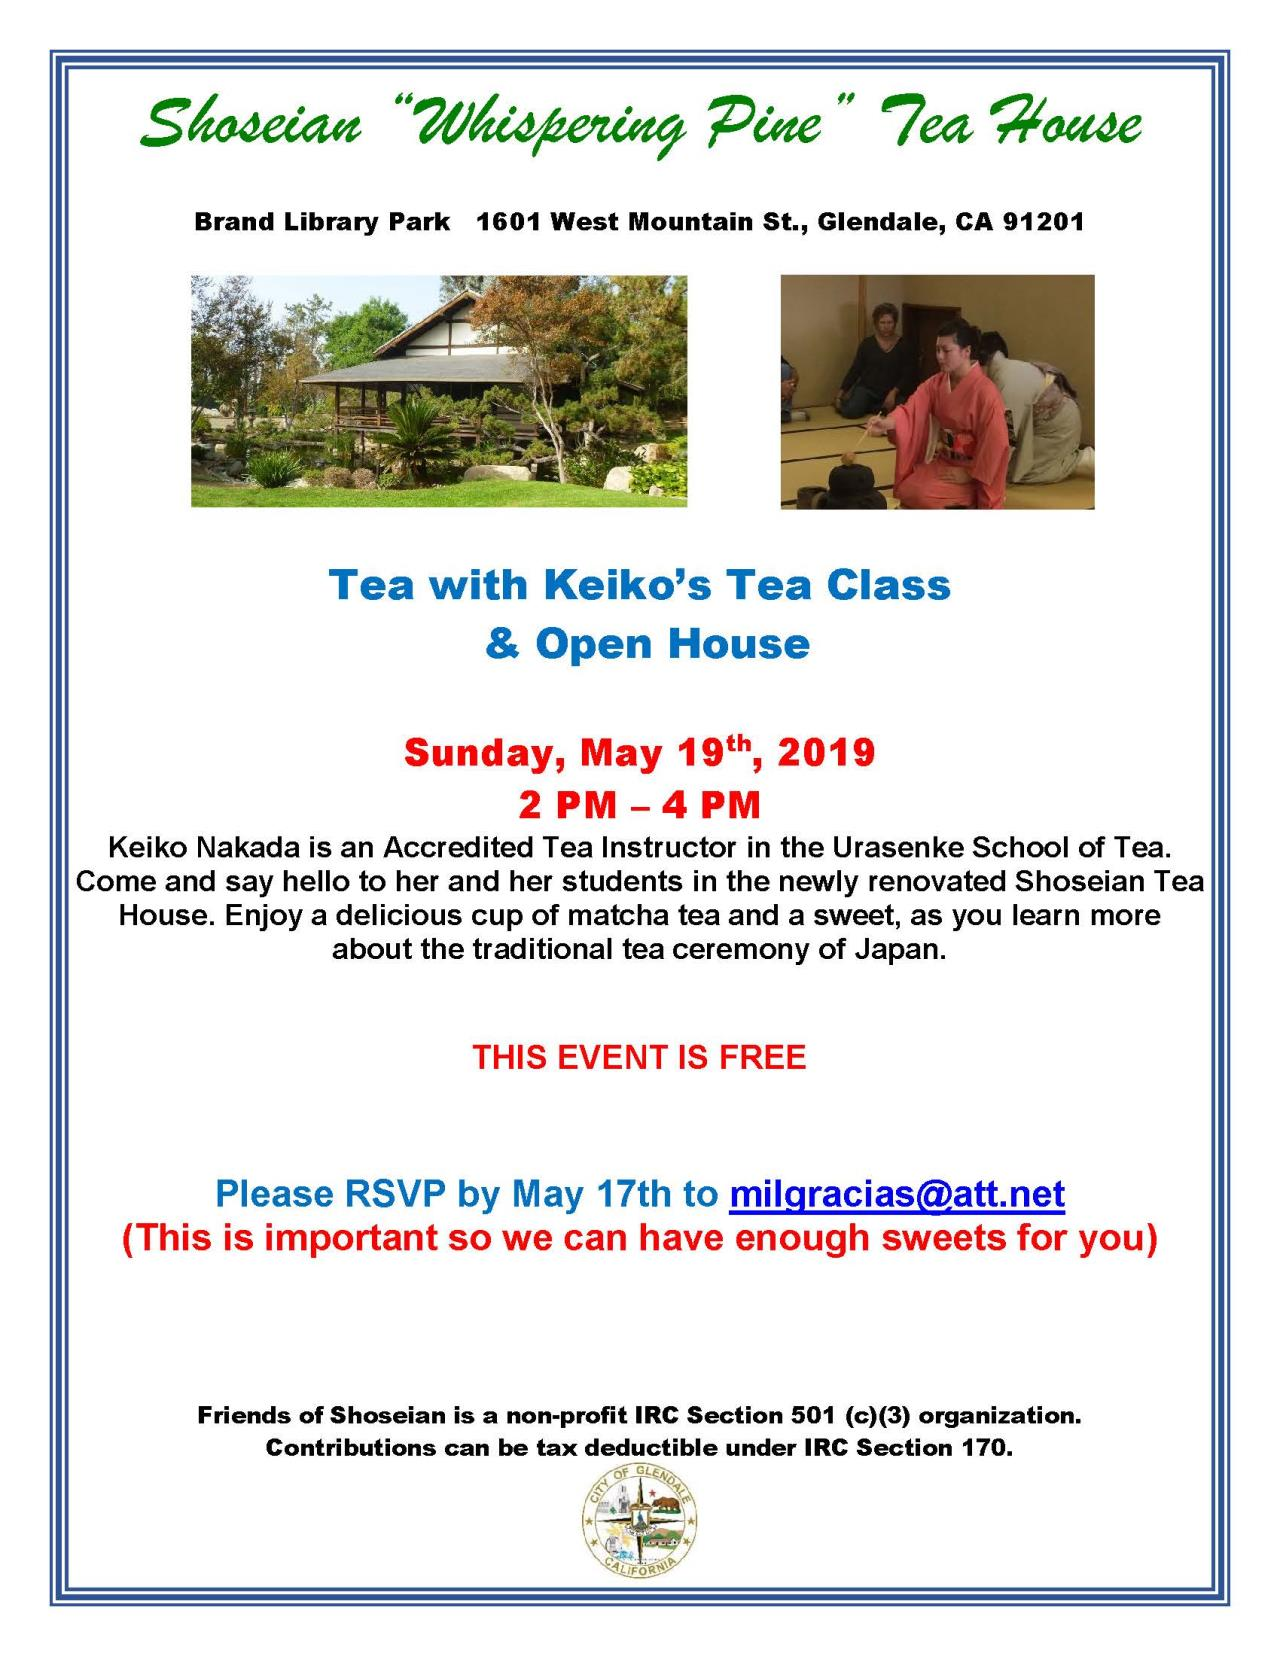 Shoseian Tea House -May 19 2019 - Tea with Keiko - Flyer V1